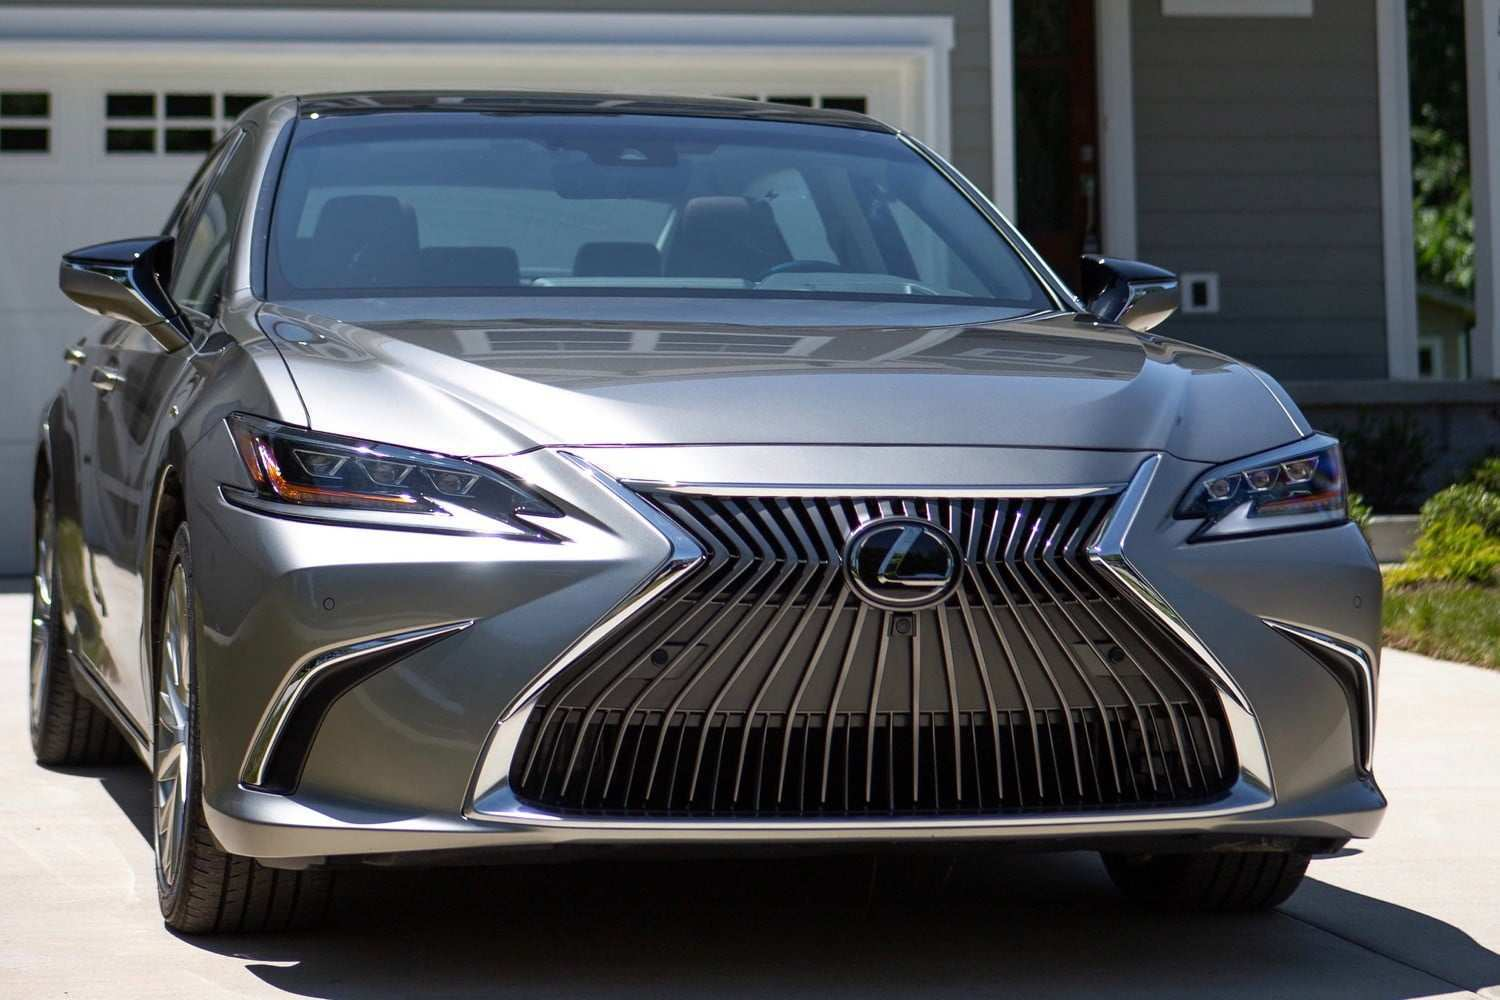 89 Best Review 2019 Lexus Availability Interior by 2019 Lexus Availability